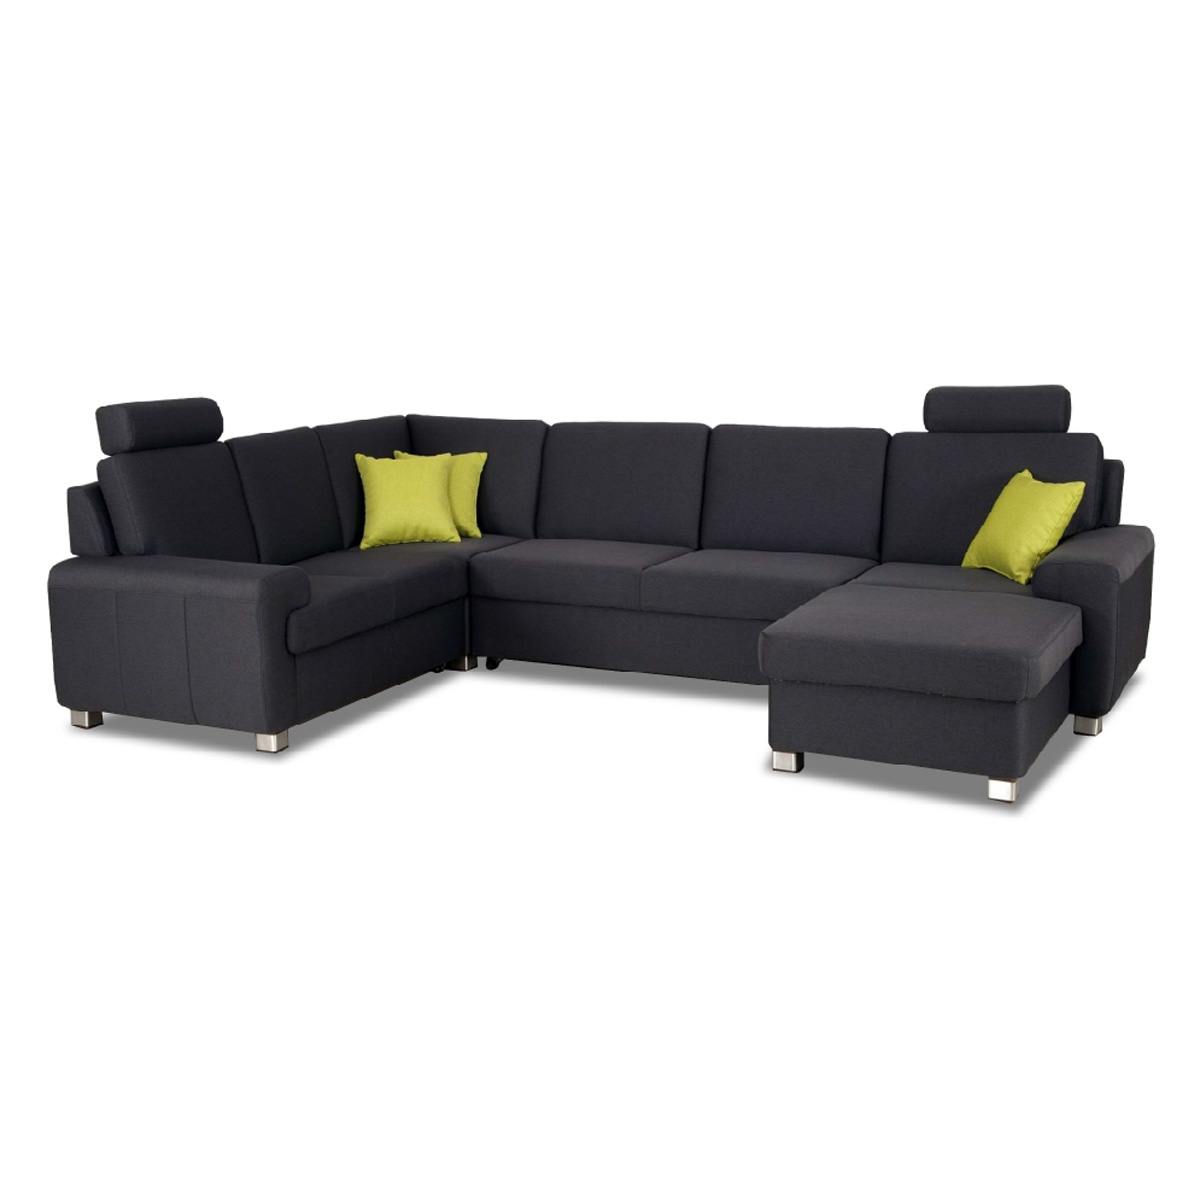 wohnlandschaft plaza sofa ecksofa anthrazit mit. Black Bedroom Furniture Sets. Home Design Ideas